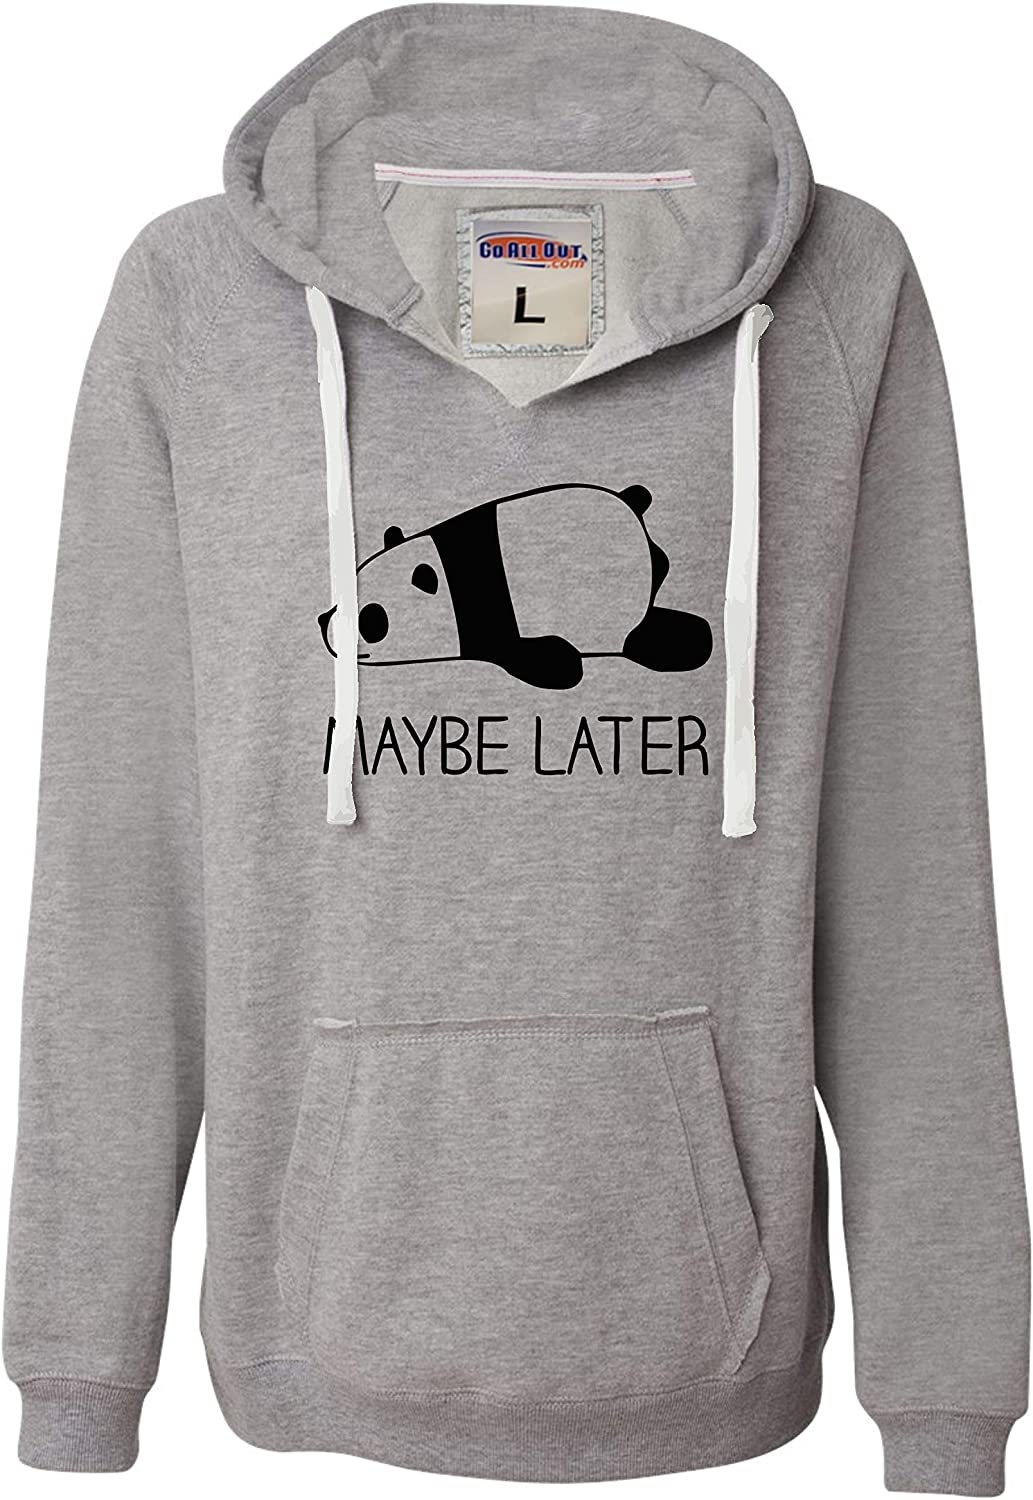 Go All Out Womens Daily bargain sale Maybe Later Panda Soft Latest item Funny Deluxe Hoodie